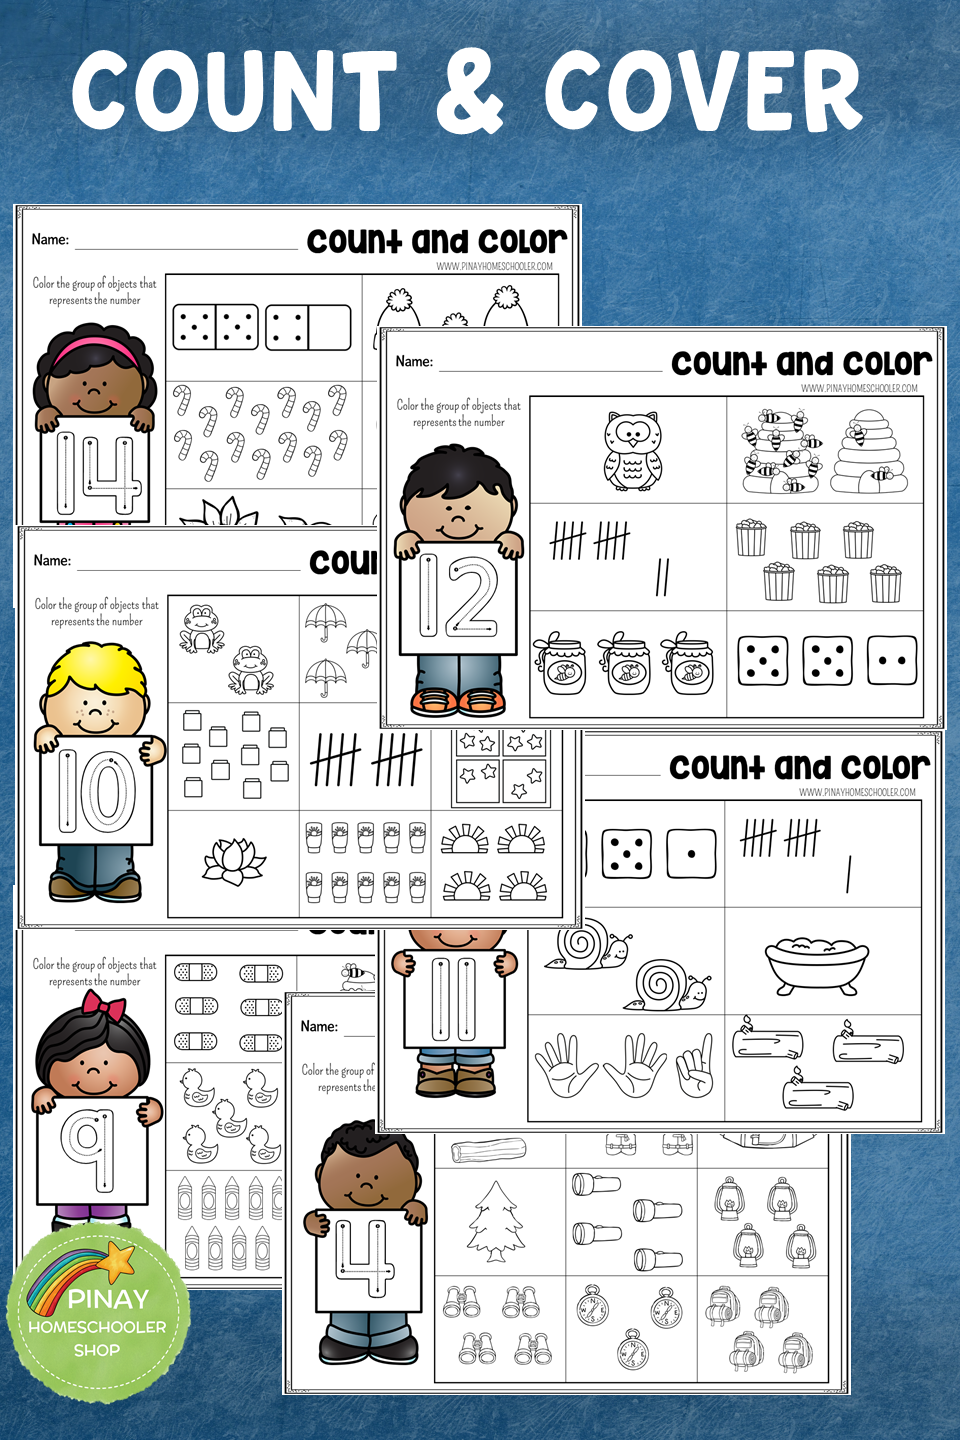 Practice Counting With This Count And Color Learning Pack Contains 20 Activity Sheets For Countin Preschool Worksheets Learning Activities Learning Worksheets [ 1440 x 960 Pixel ]